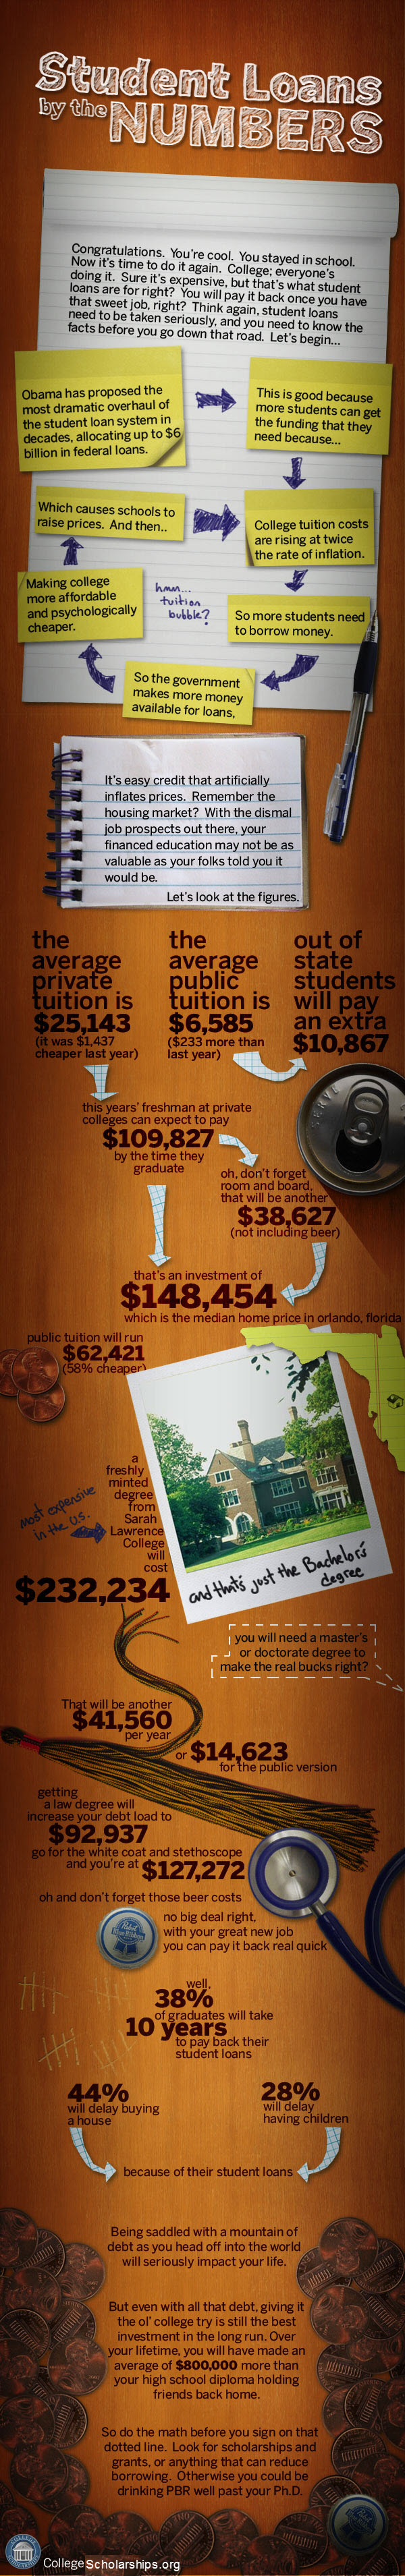 Student Loans by the Numbers.